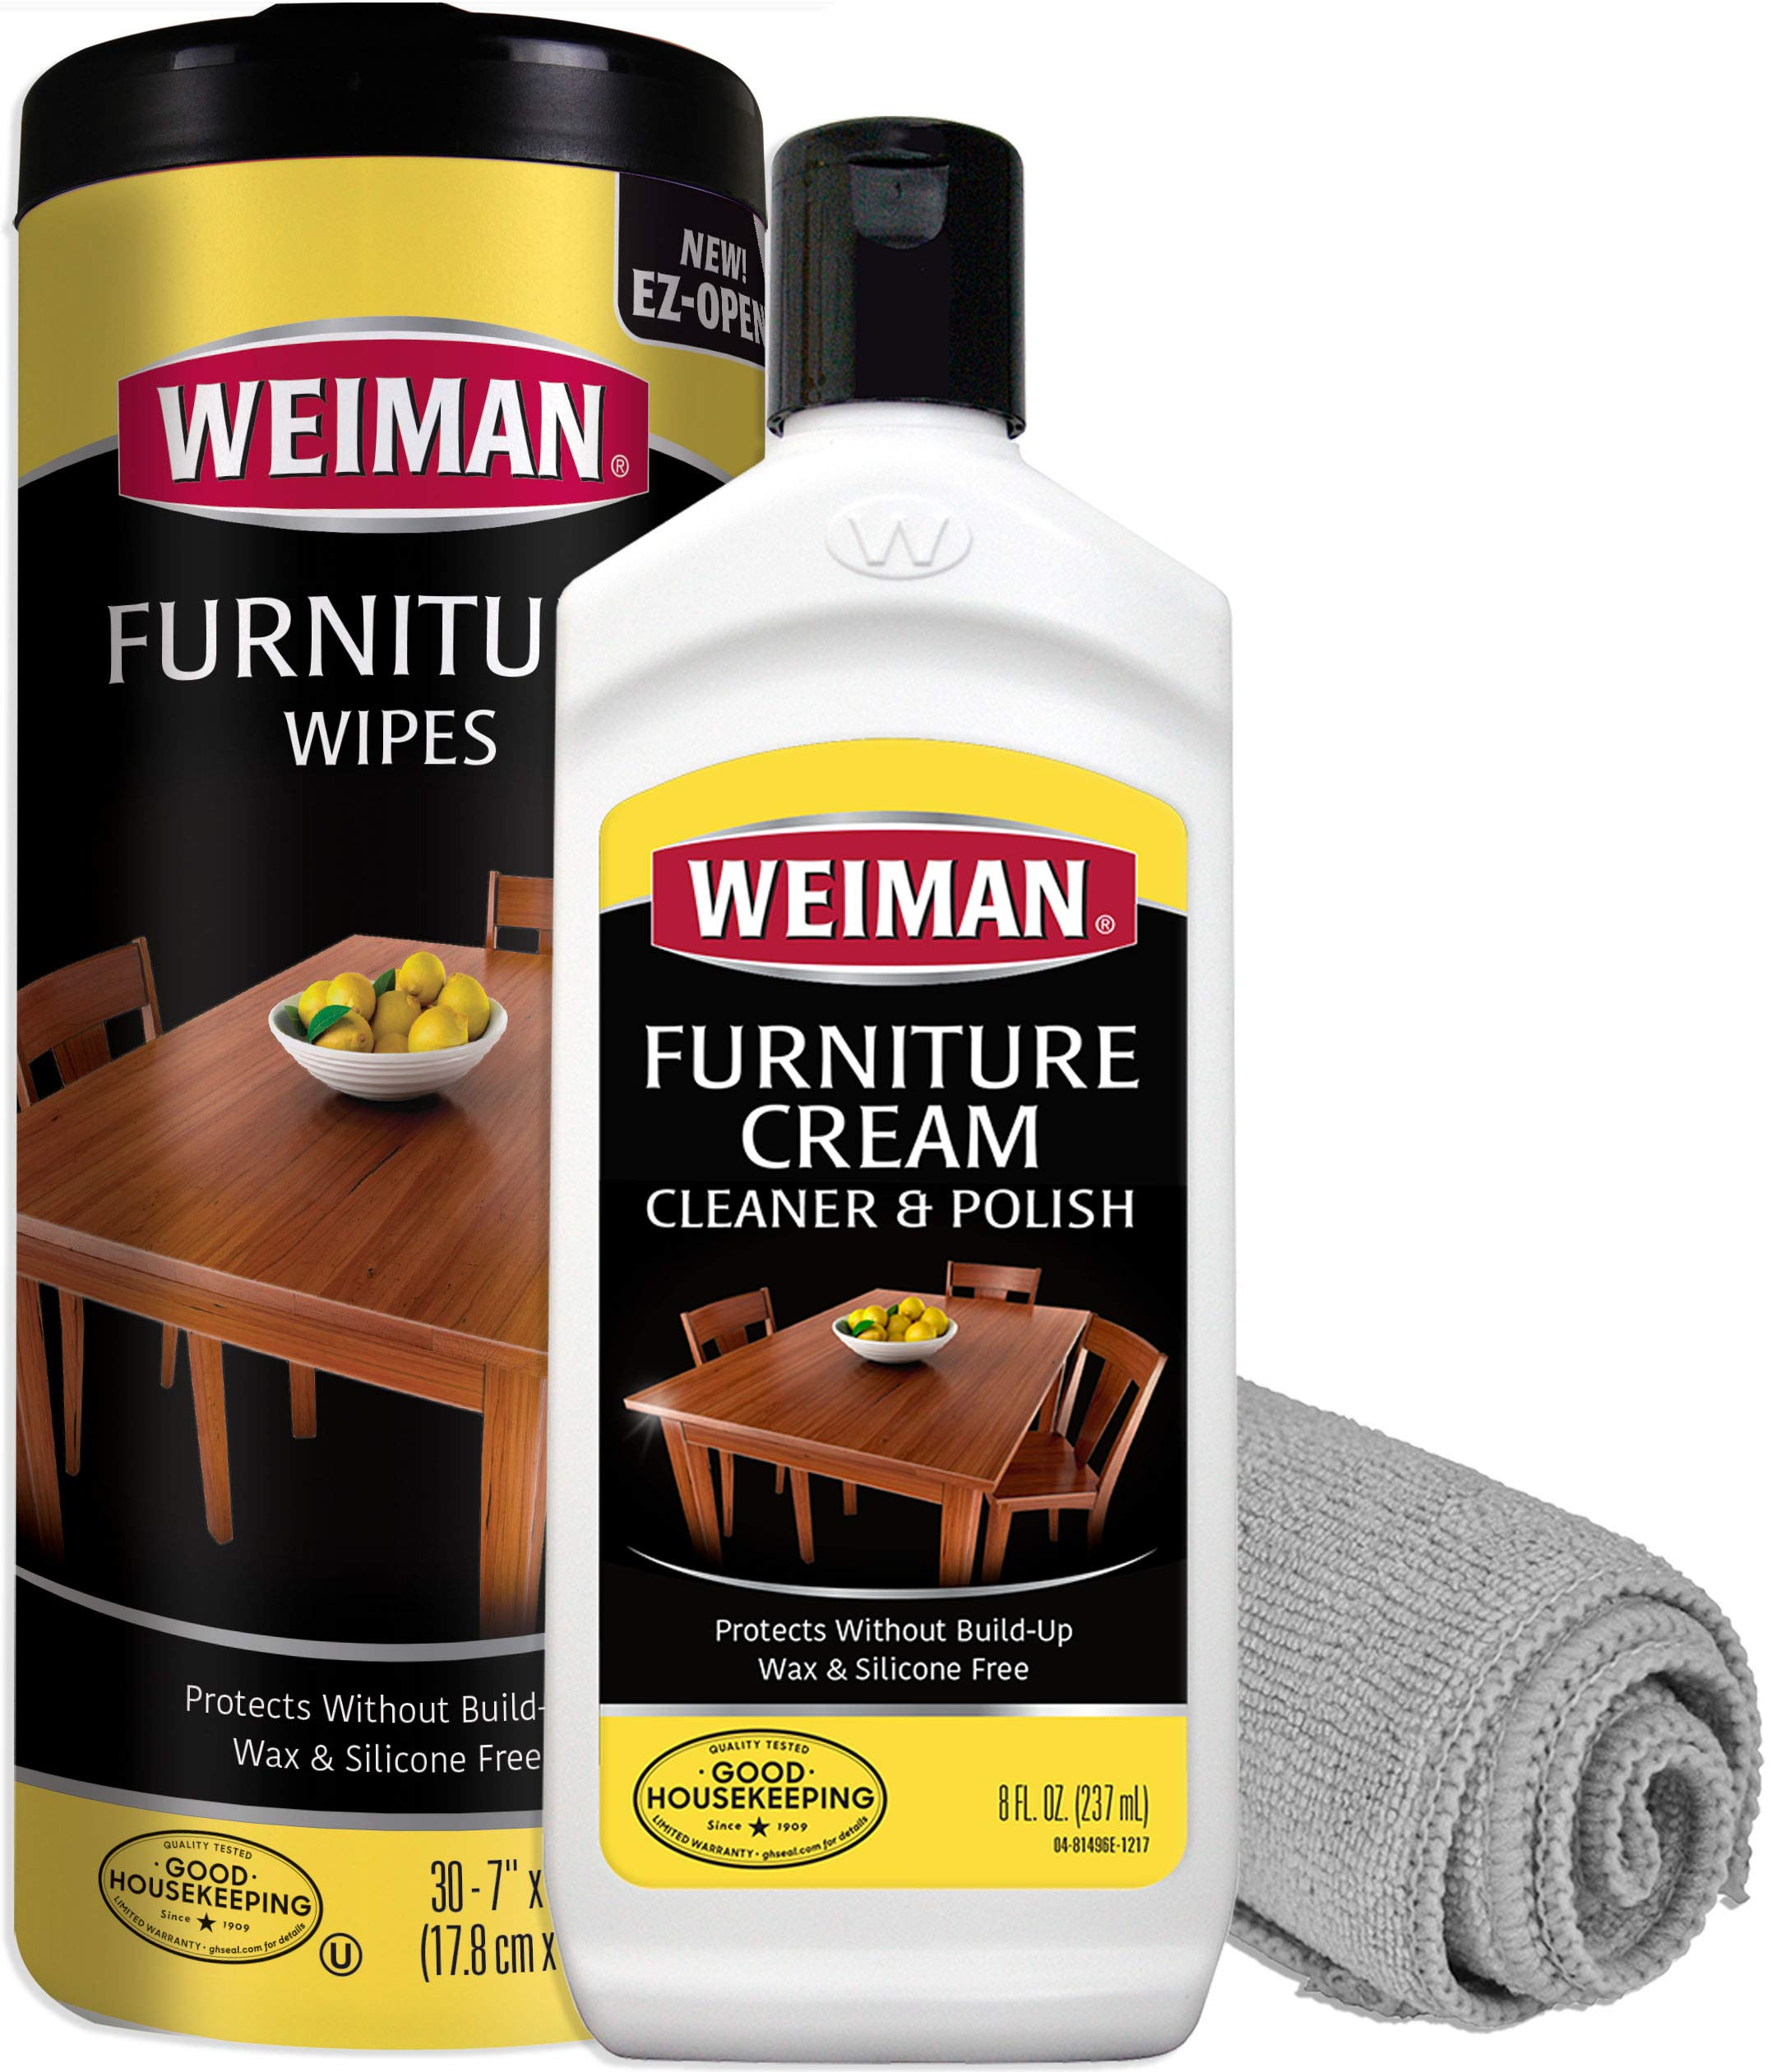 Weiman Wood Cleaner Conditioner Polish and Wipes with Microfiber Cloth - Use On Furniture, Wood Table Cleaner, Cabinet Restorer, Deep Conditioning and Polishing Wood Surfaces